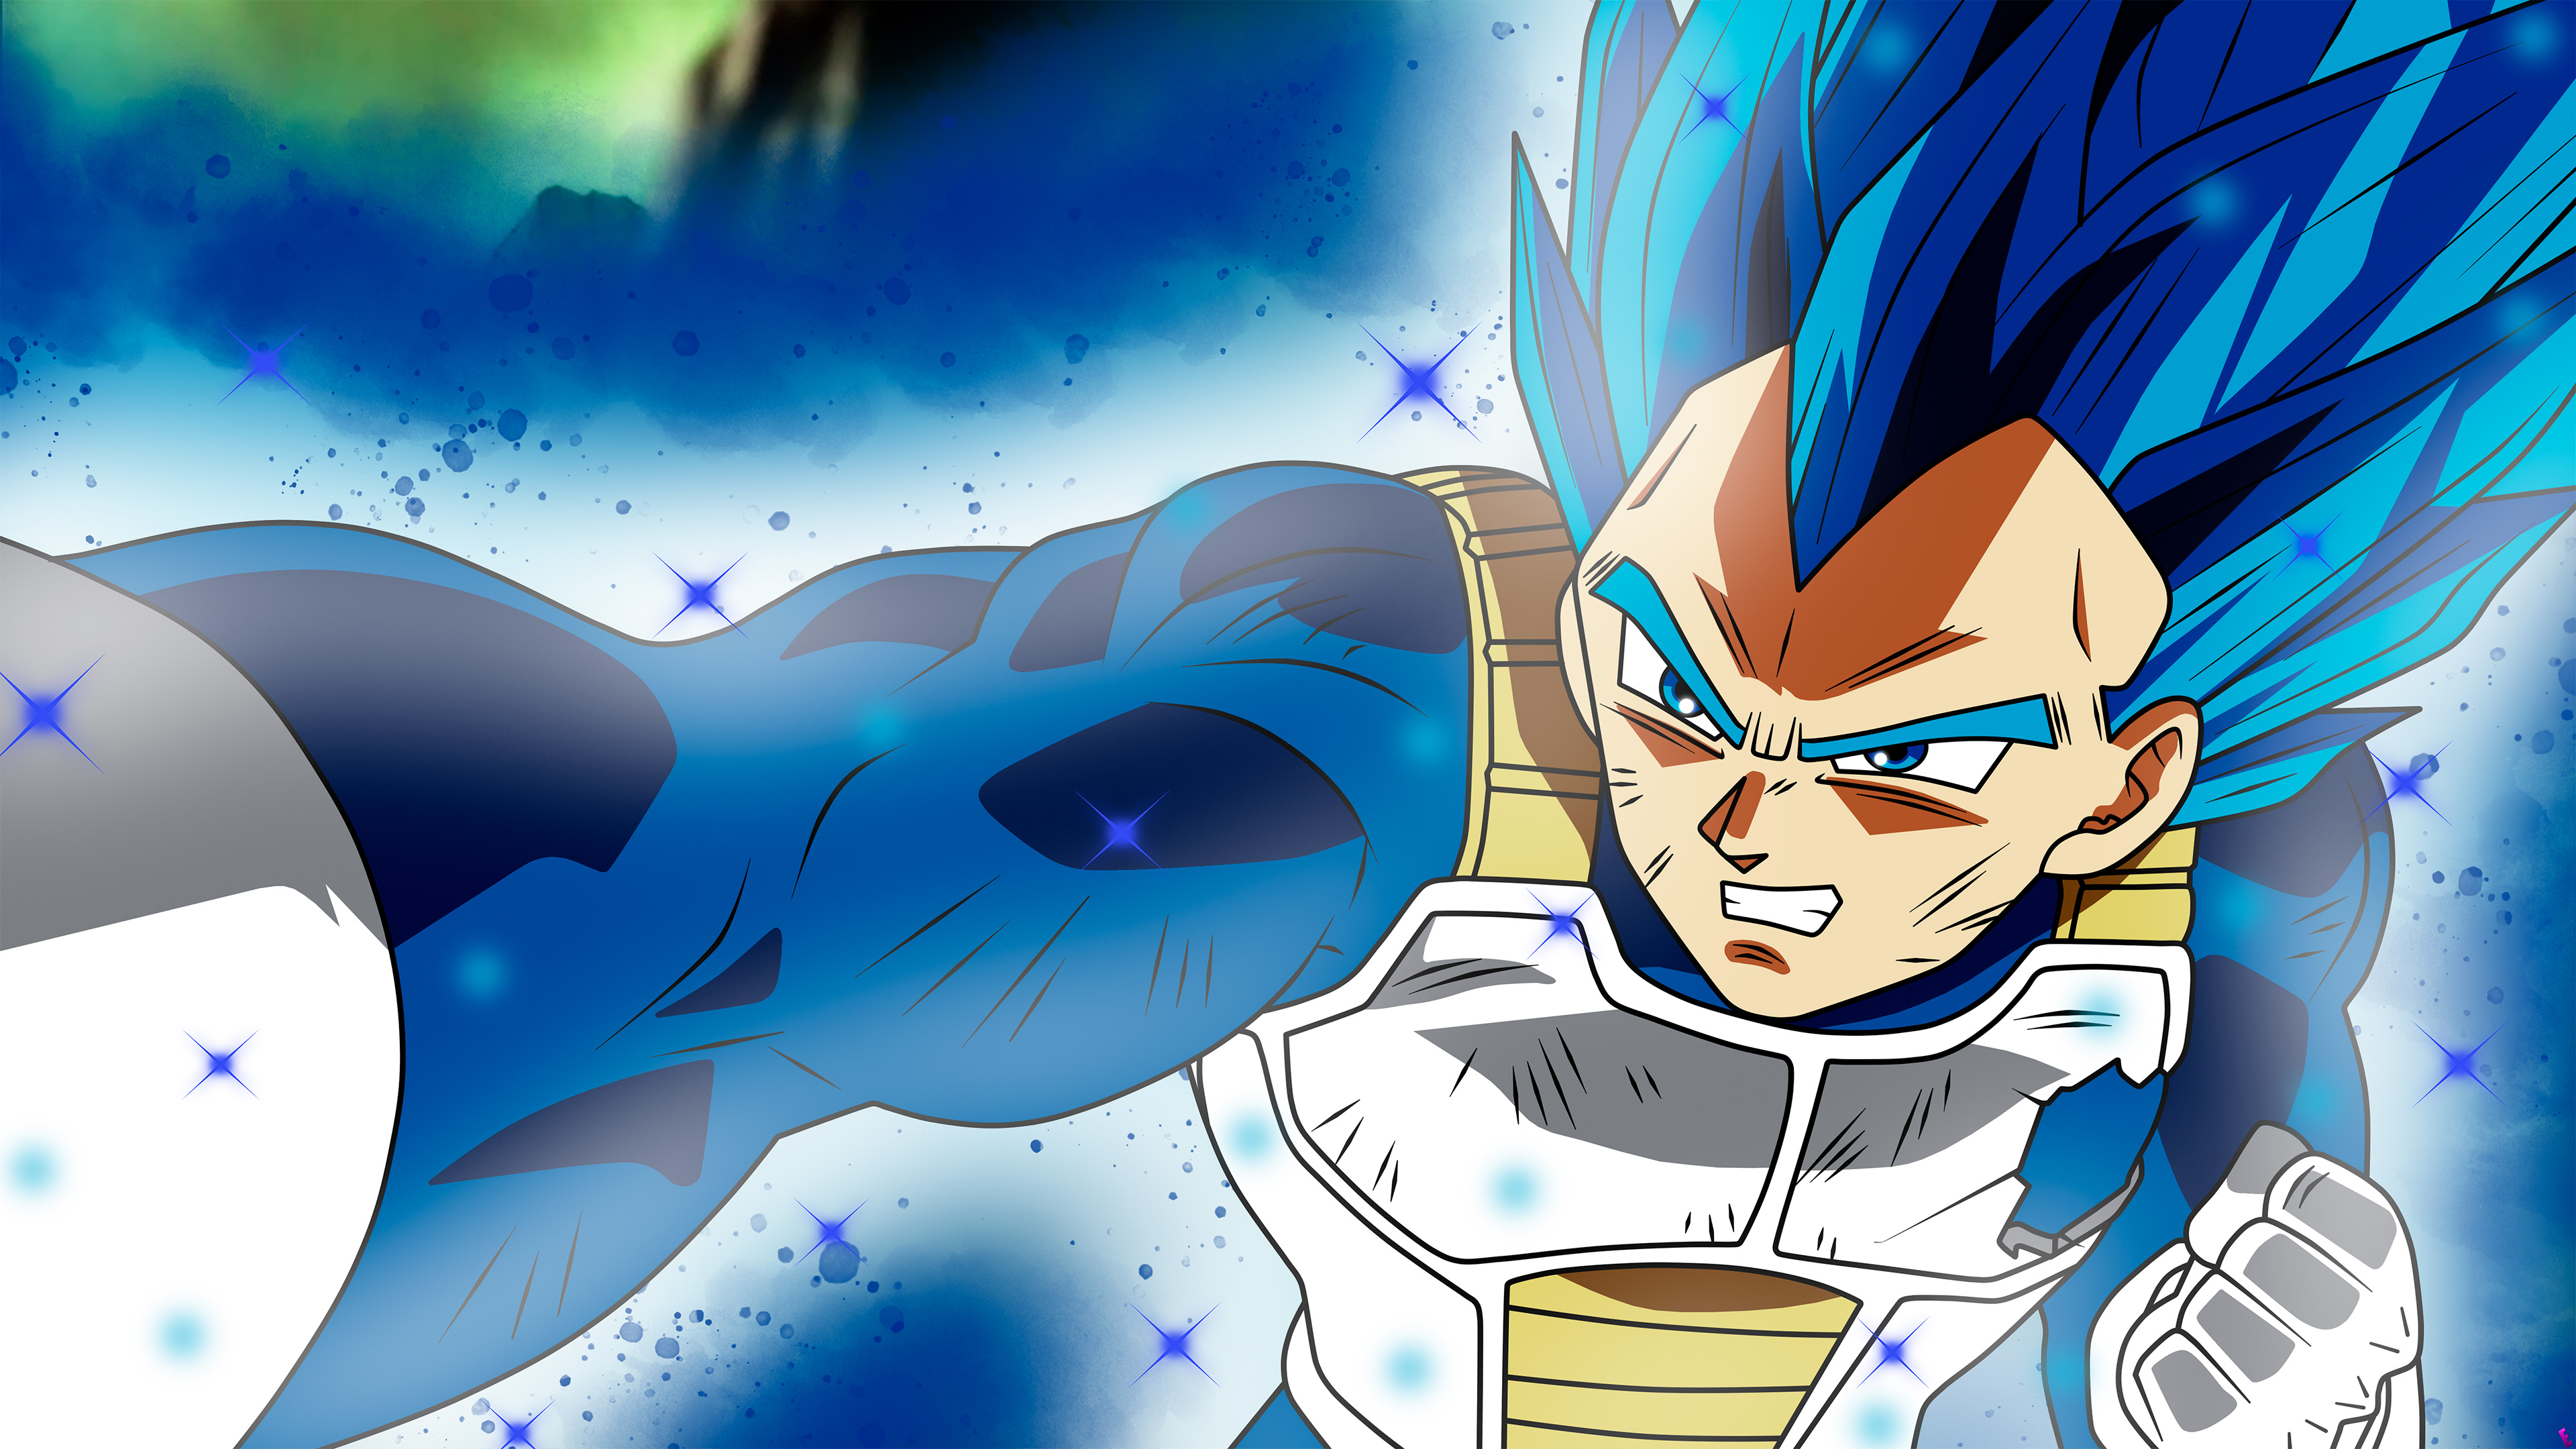 anime dragon ball super vegeta ssj blue full power, hd anime, 4k